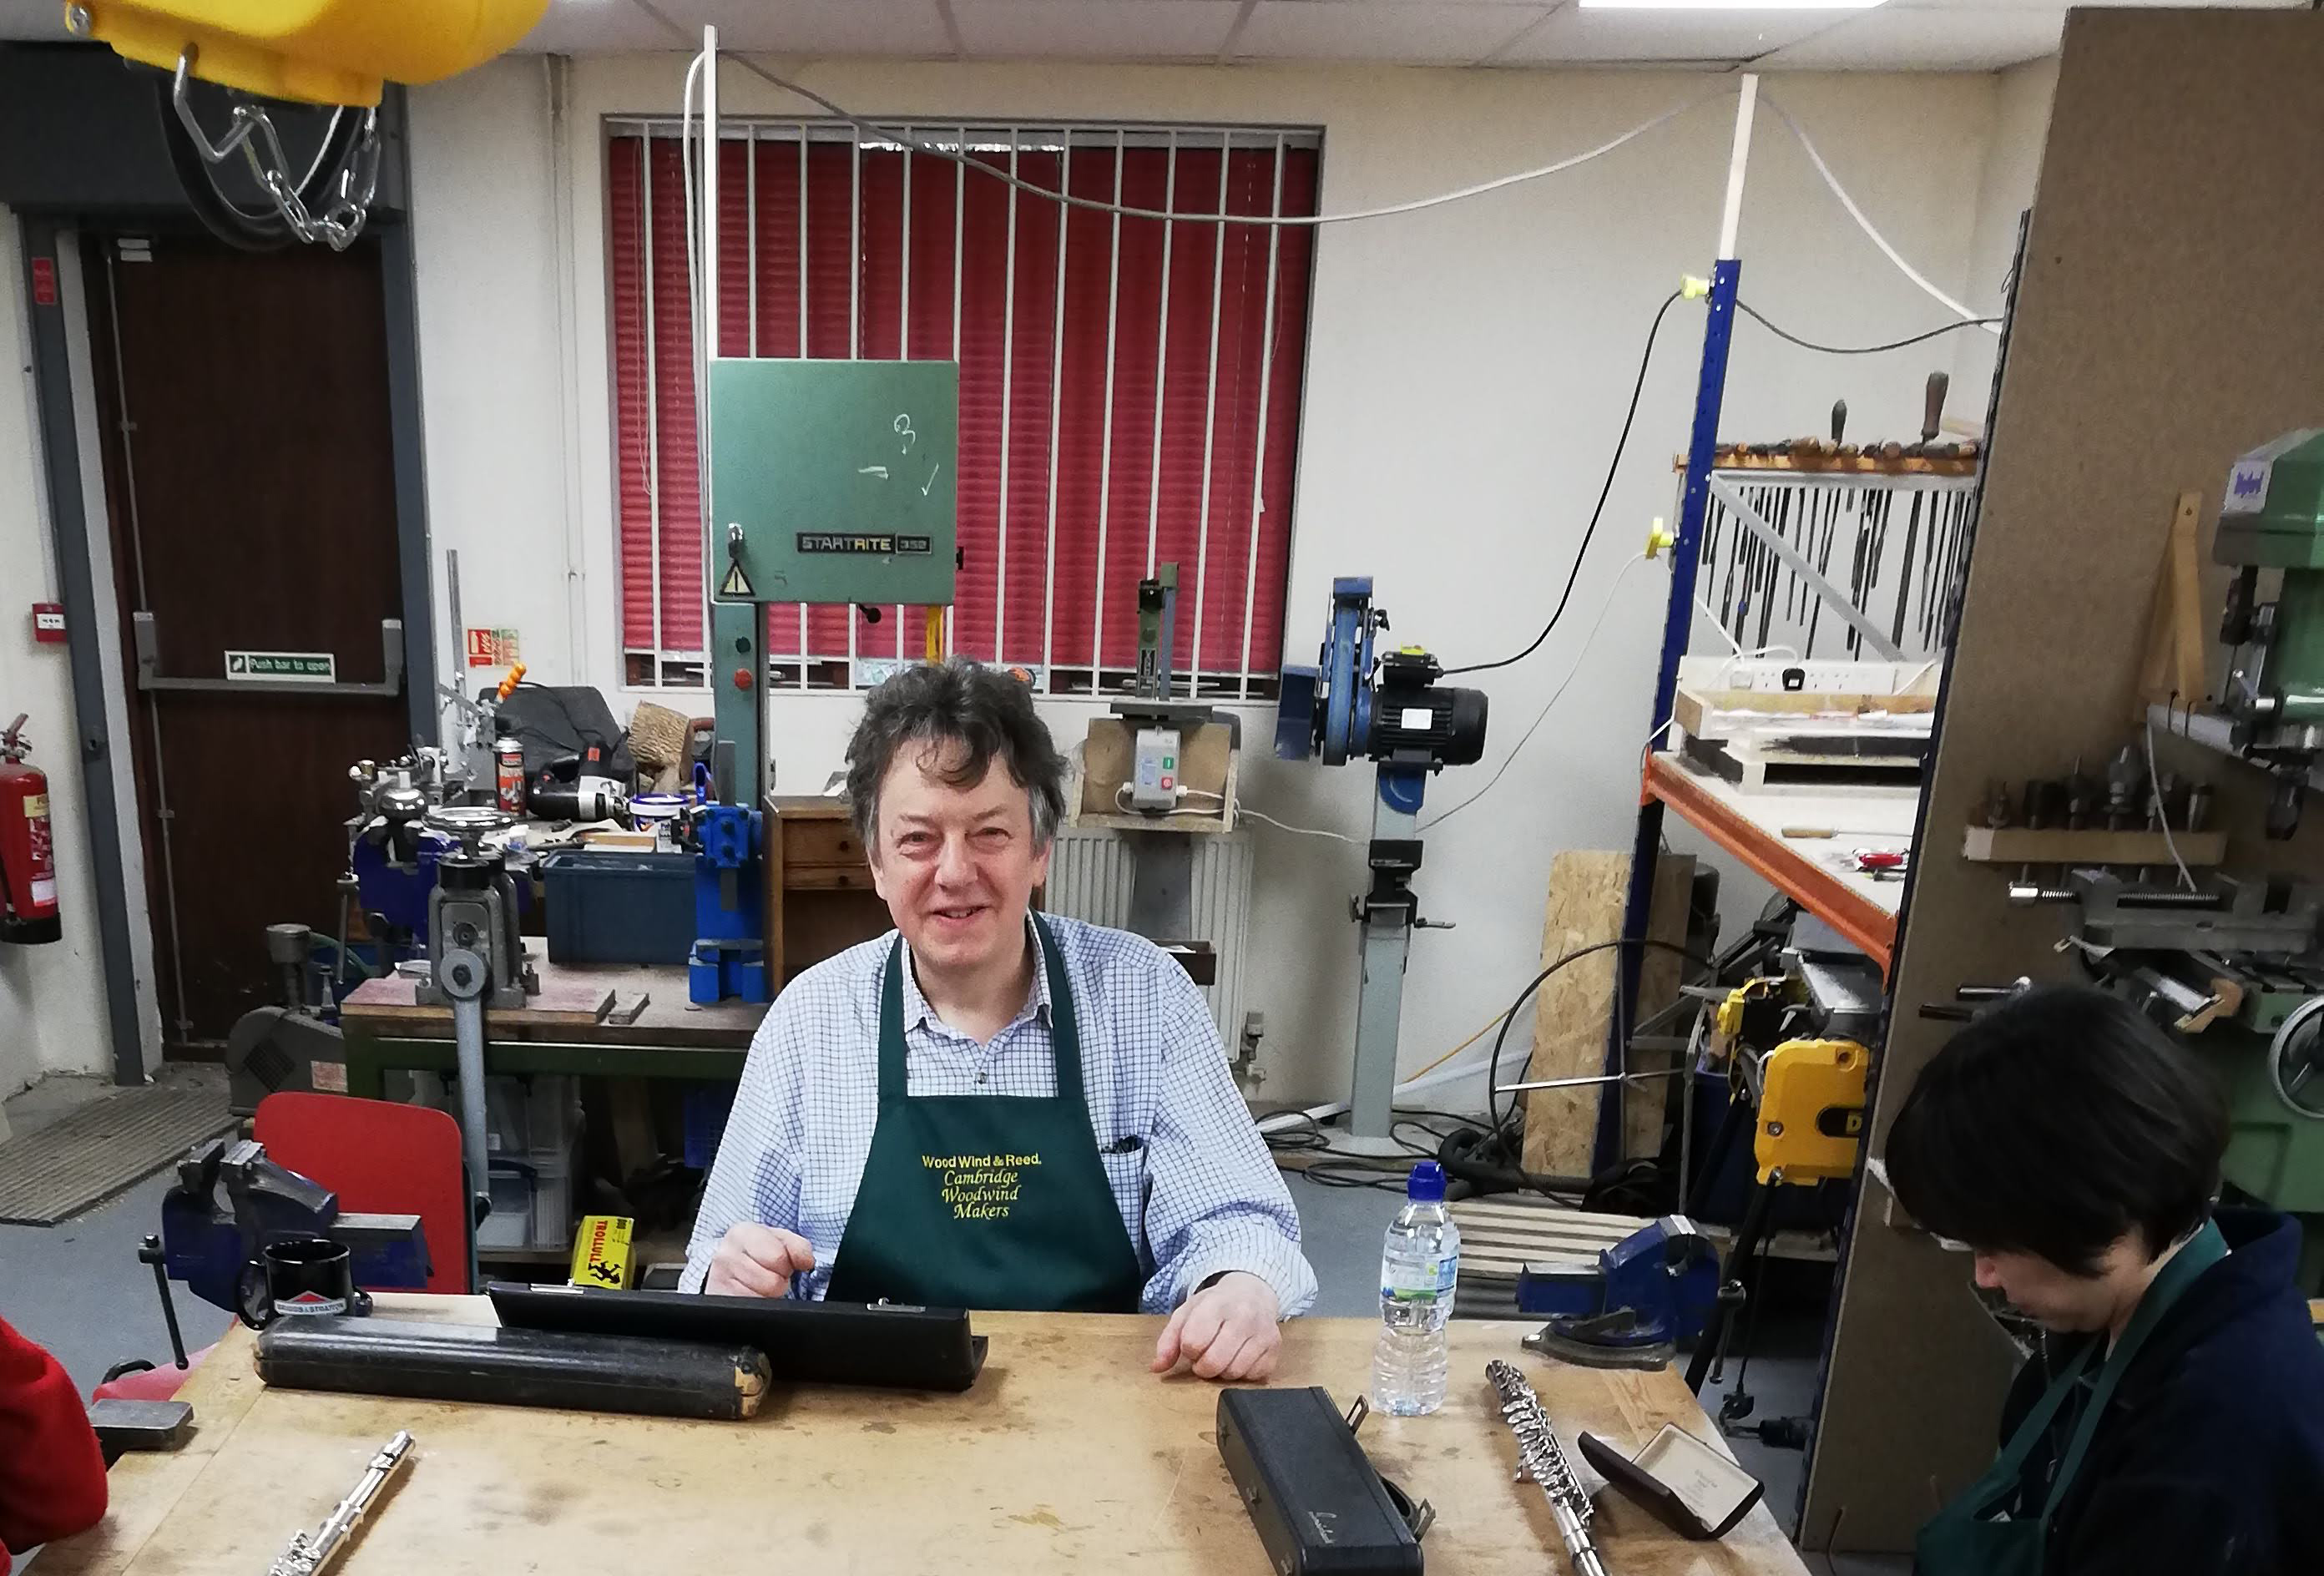 Learn about Cambridge Woodwind Makers